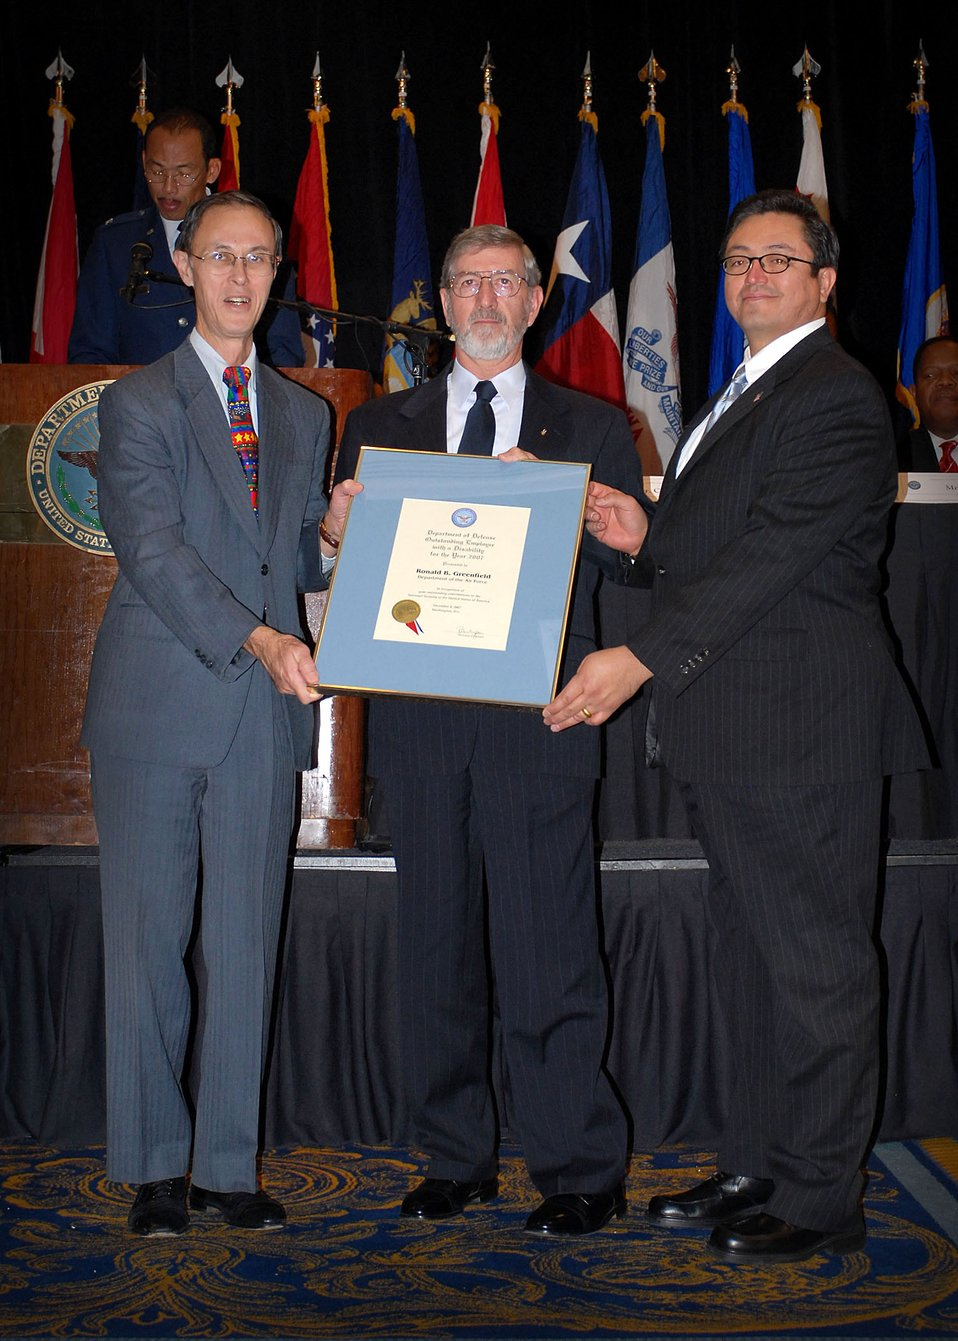 Air Force receives 2 DOD disability awards